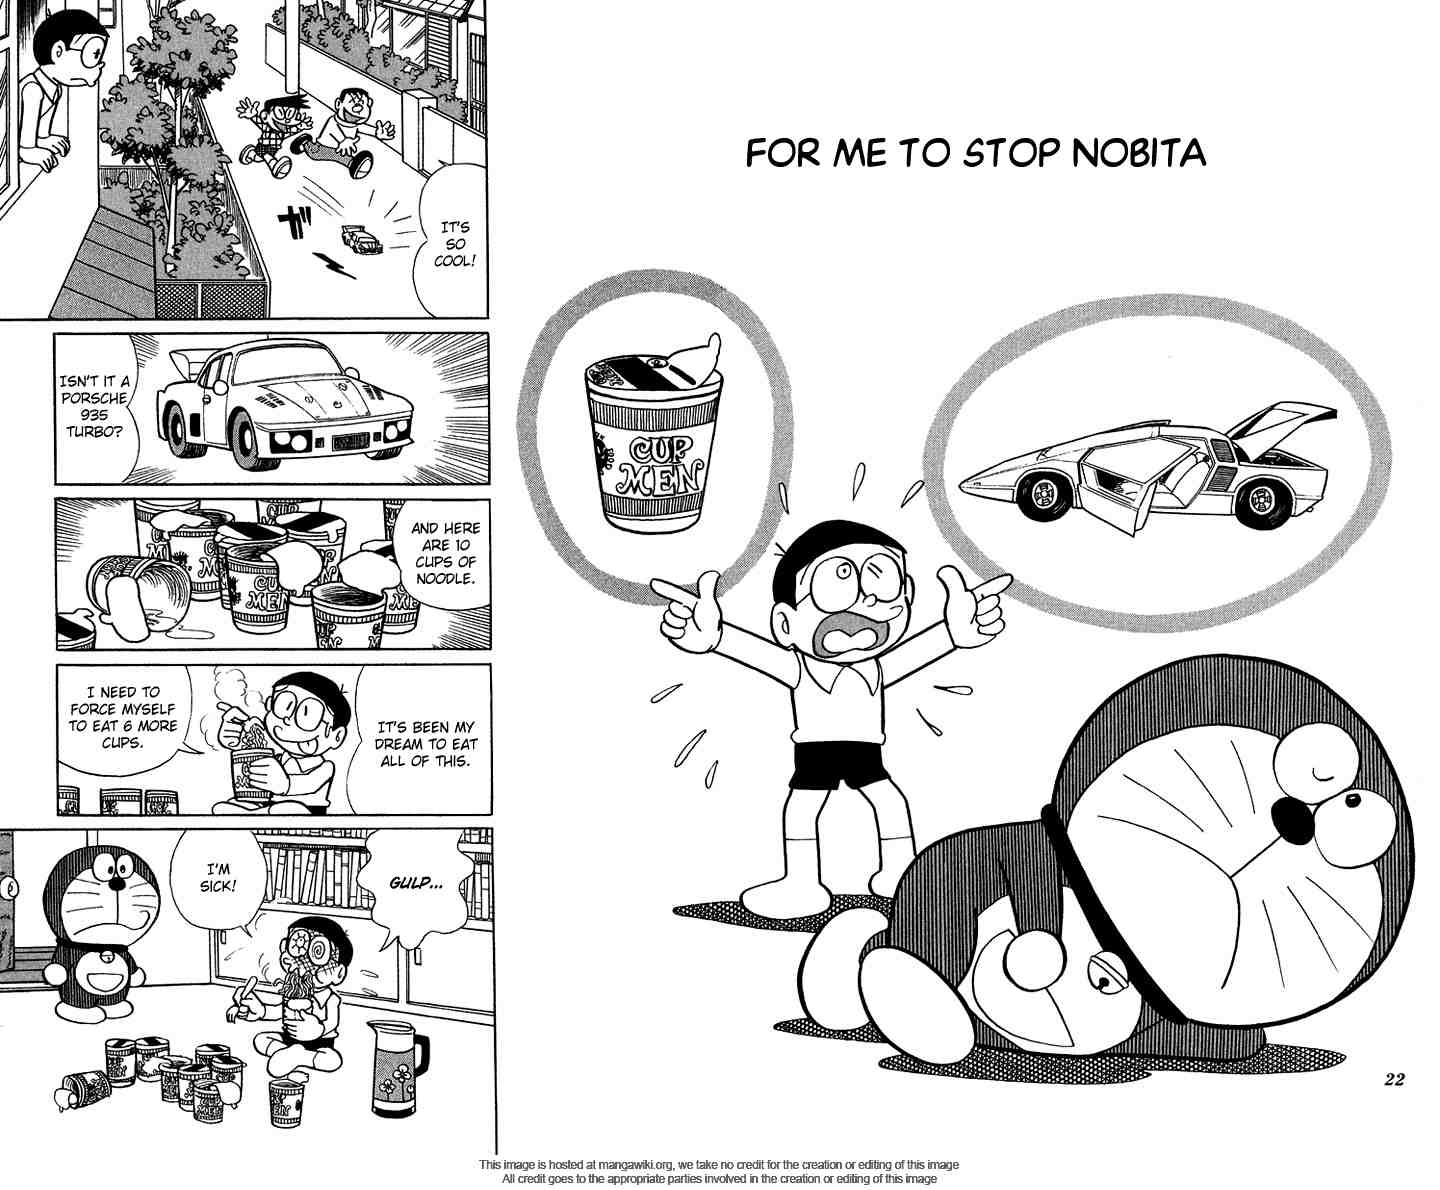 Chapter 3: For Me To Stop Nobita